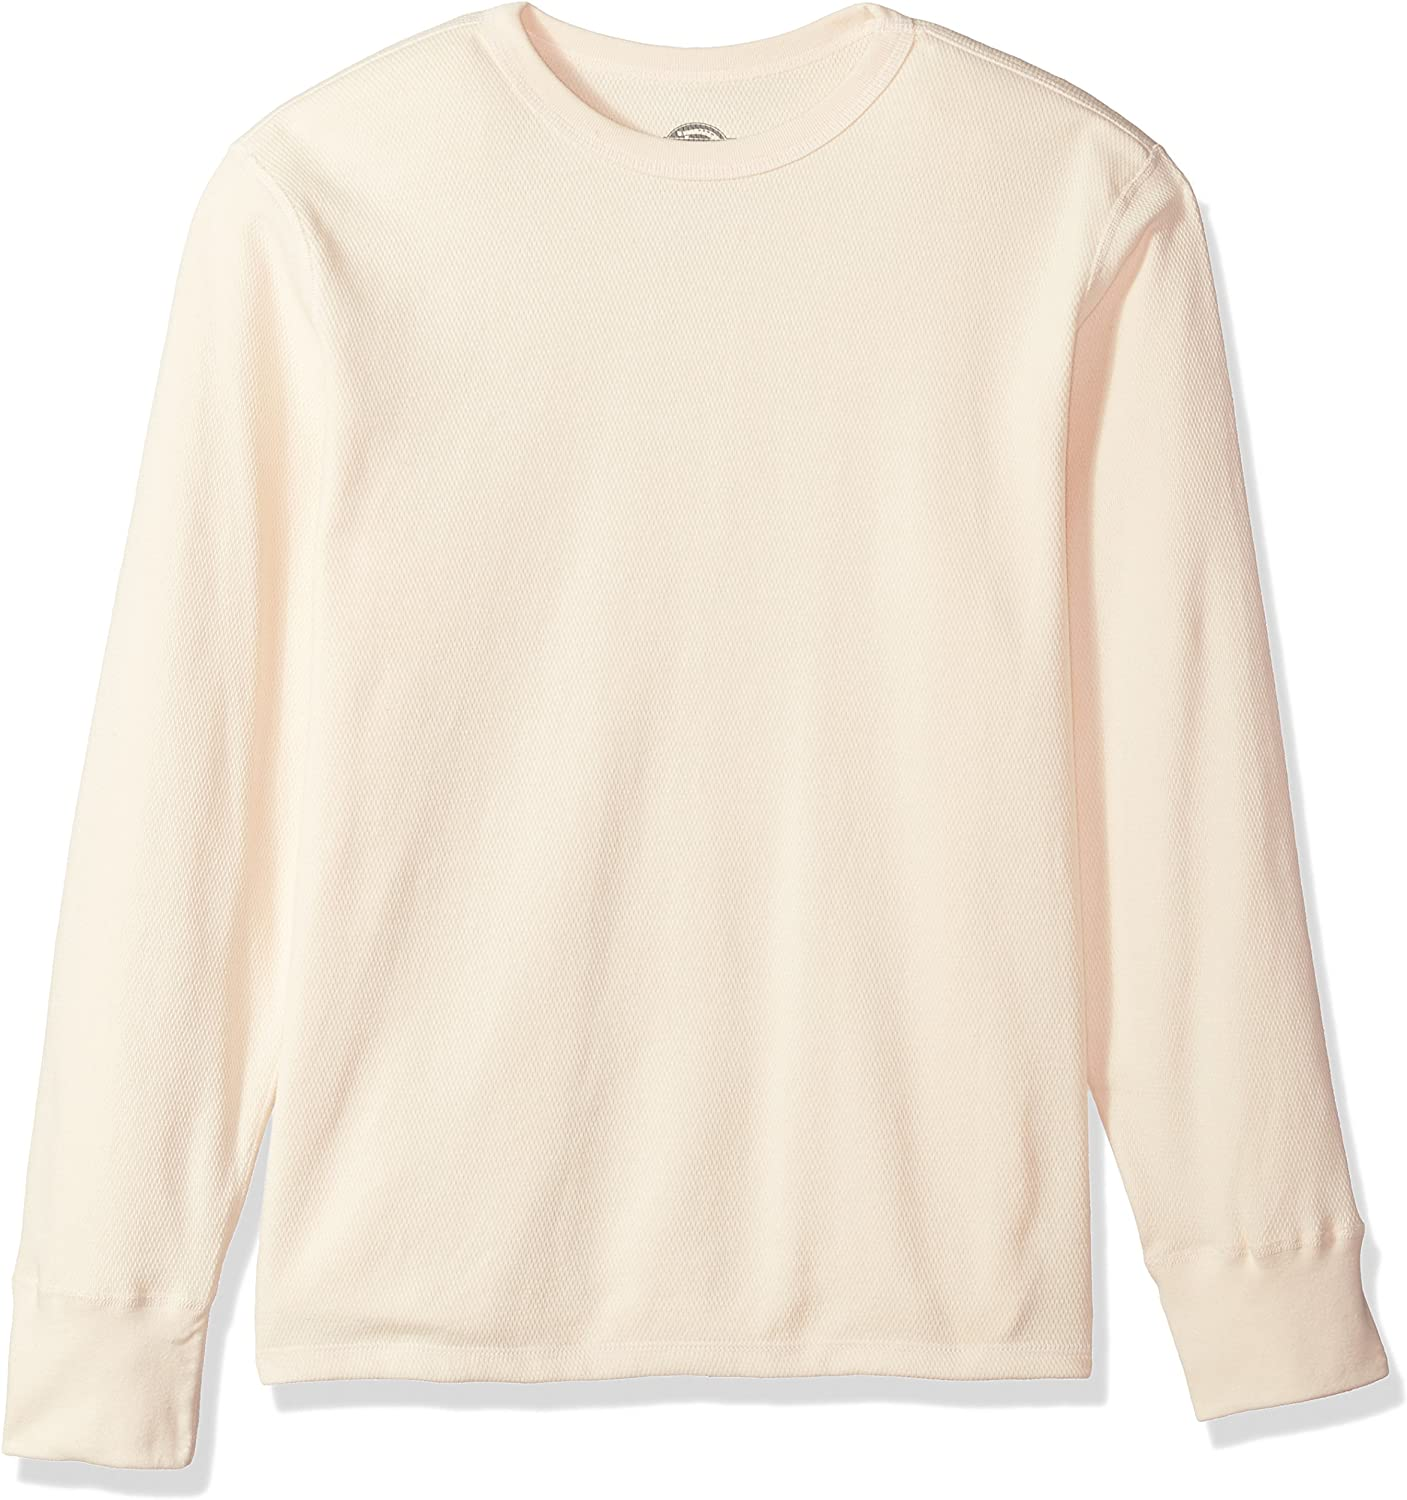 Dickies Mens Heavyweight Cotton Thermal Top